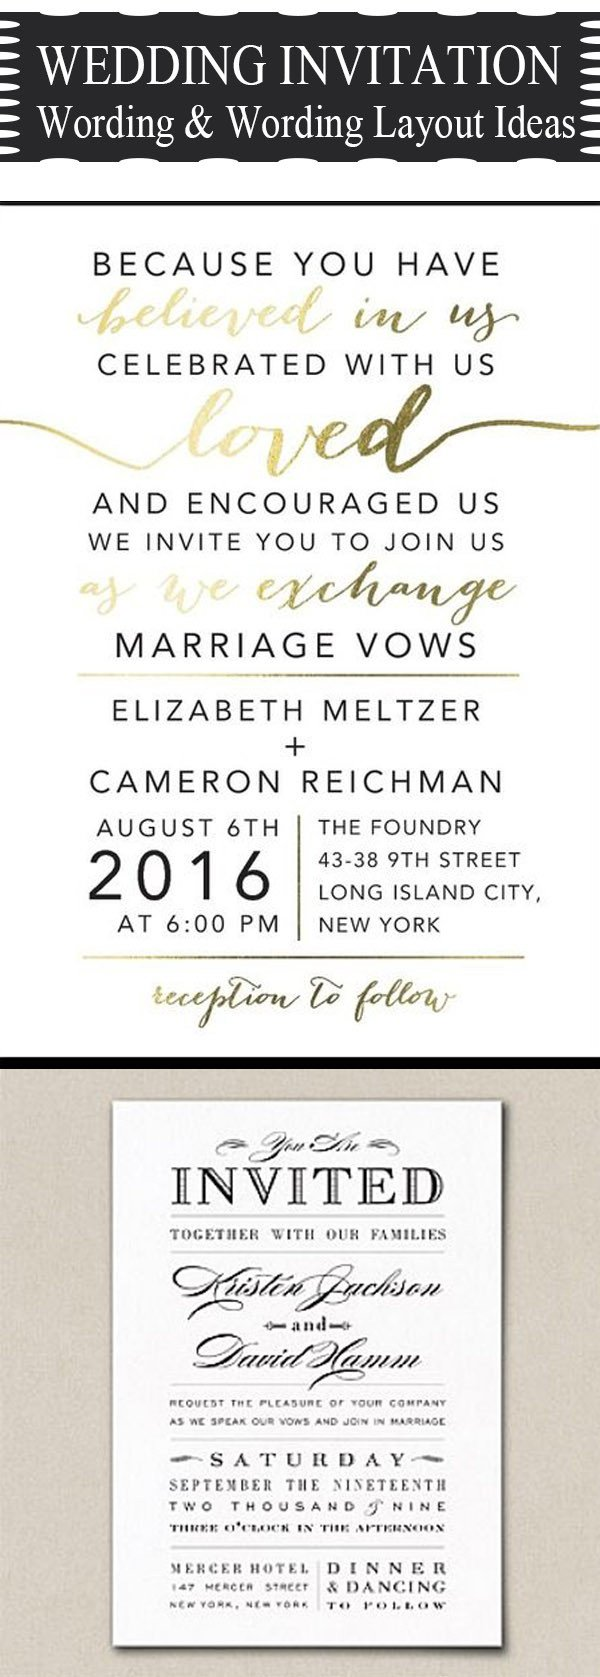 Wedding Invite Wording Template 20 Popular Wedding Invitation Wording & Diy Templates